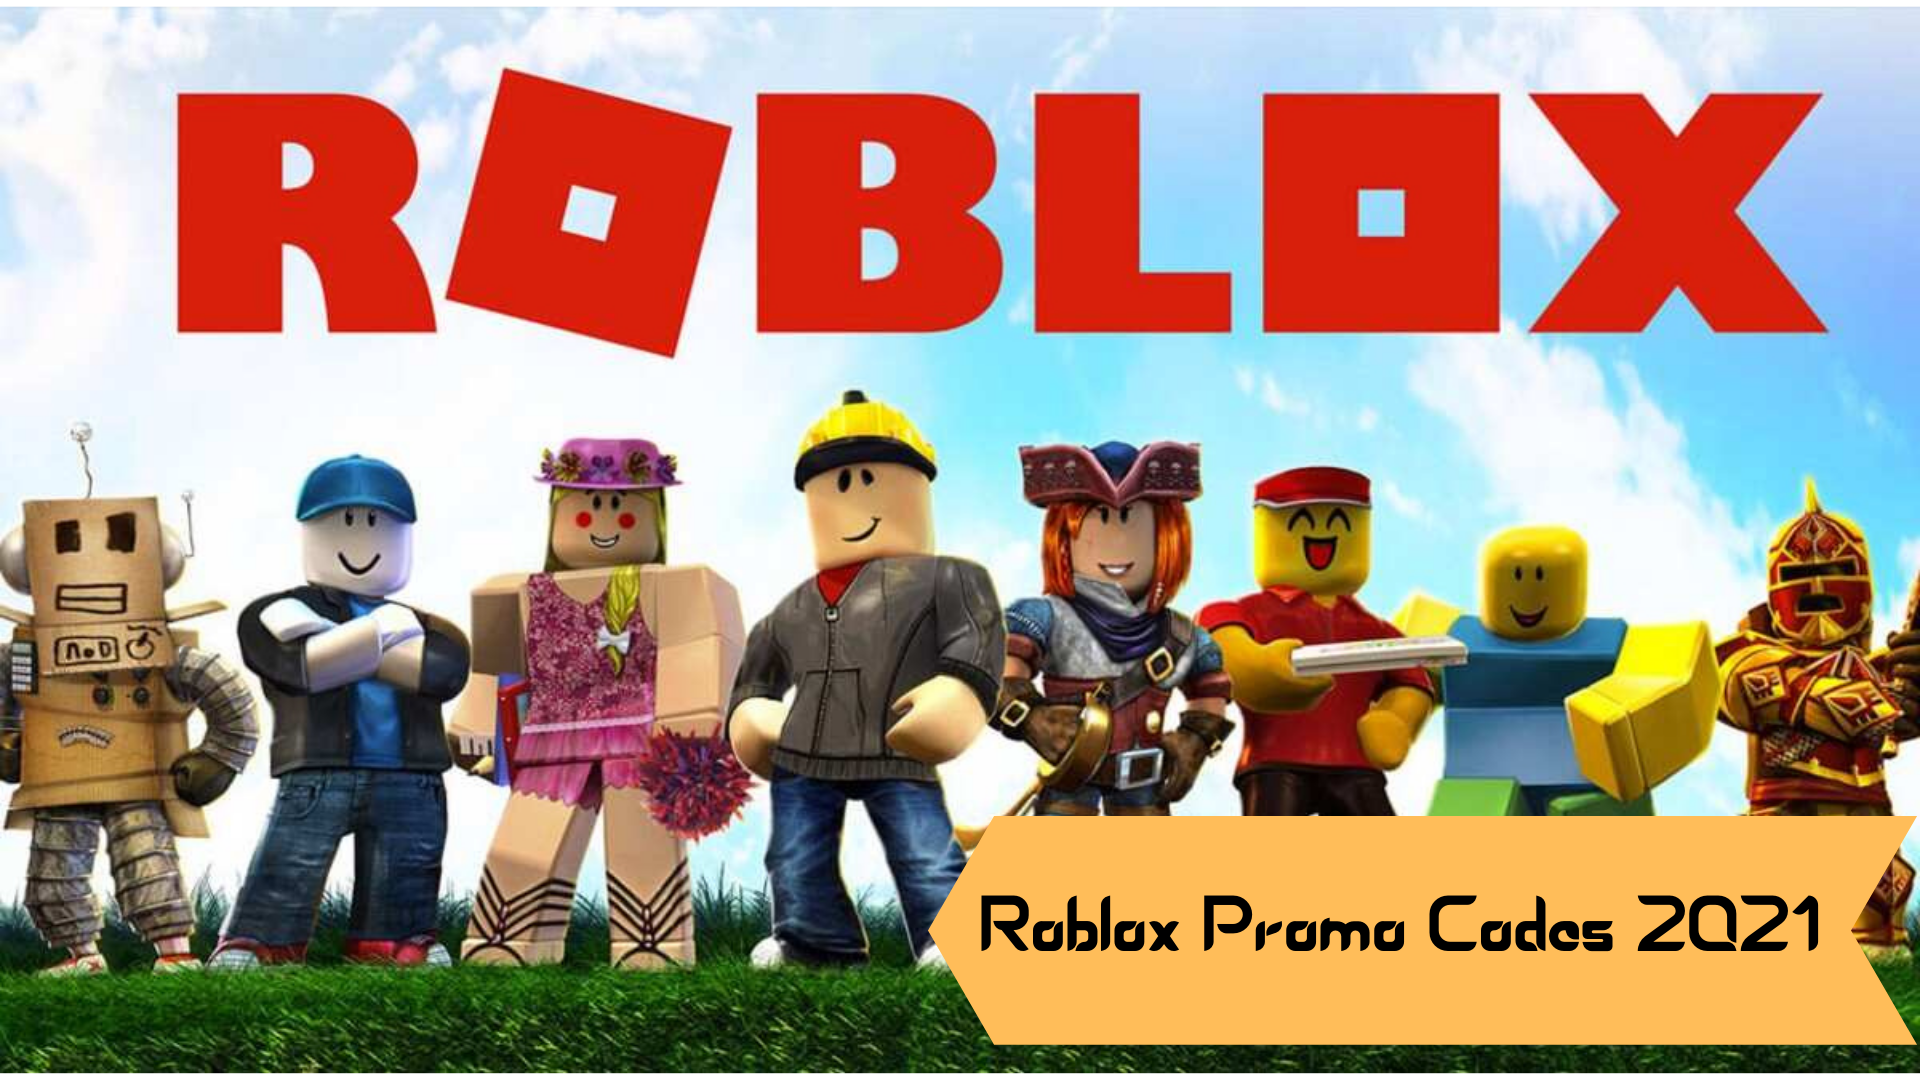 Roblox Promo Codes on ROBLOX 2021! || All Roblox Promo Codes (2021) Free Clothes & Items …